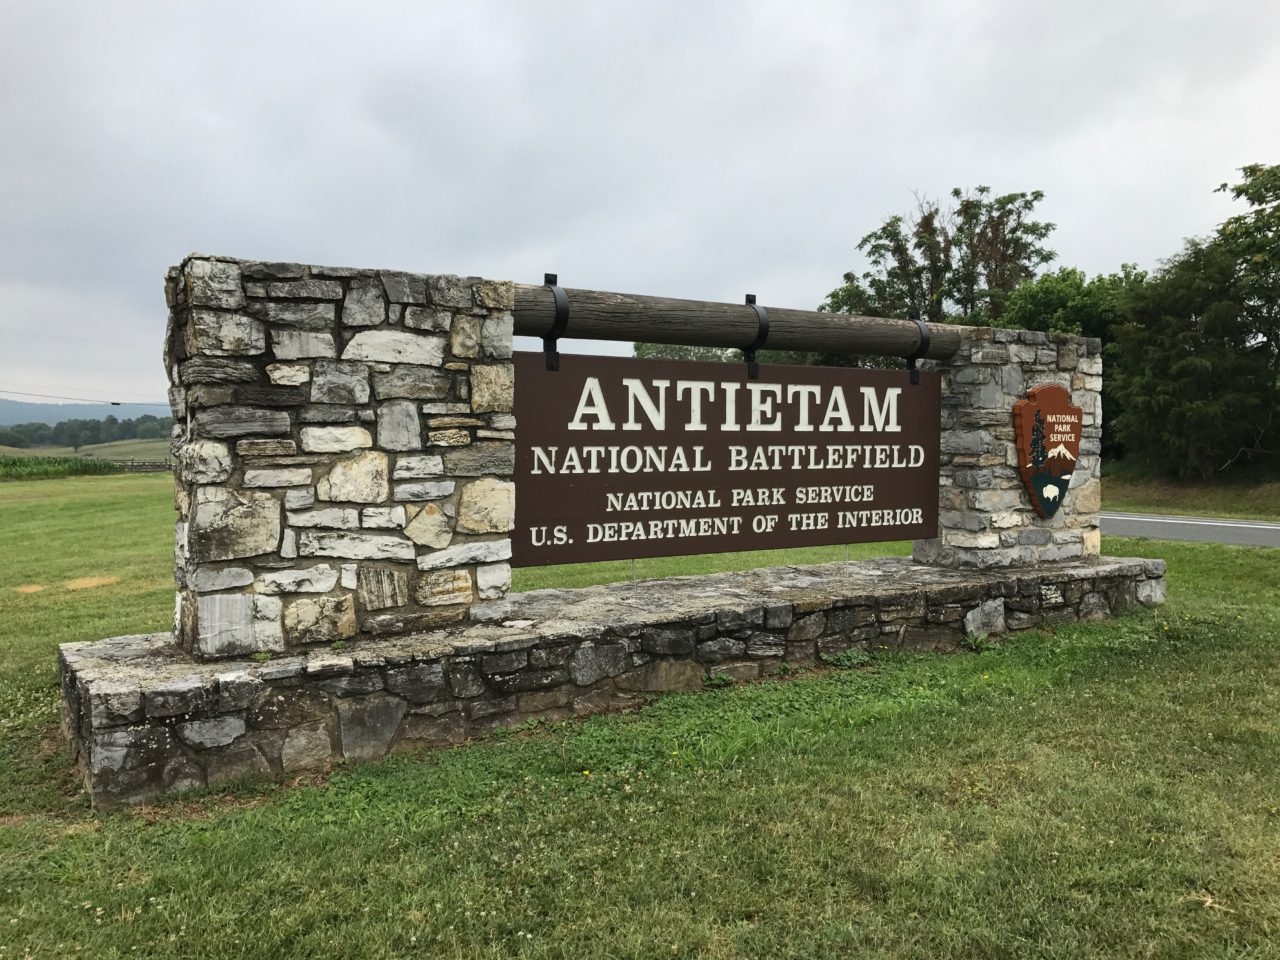 Donald Trumps Salary to Help Restore Antietam National